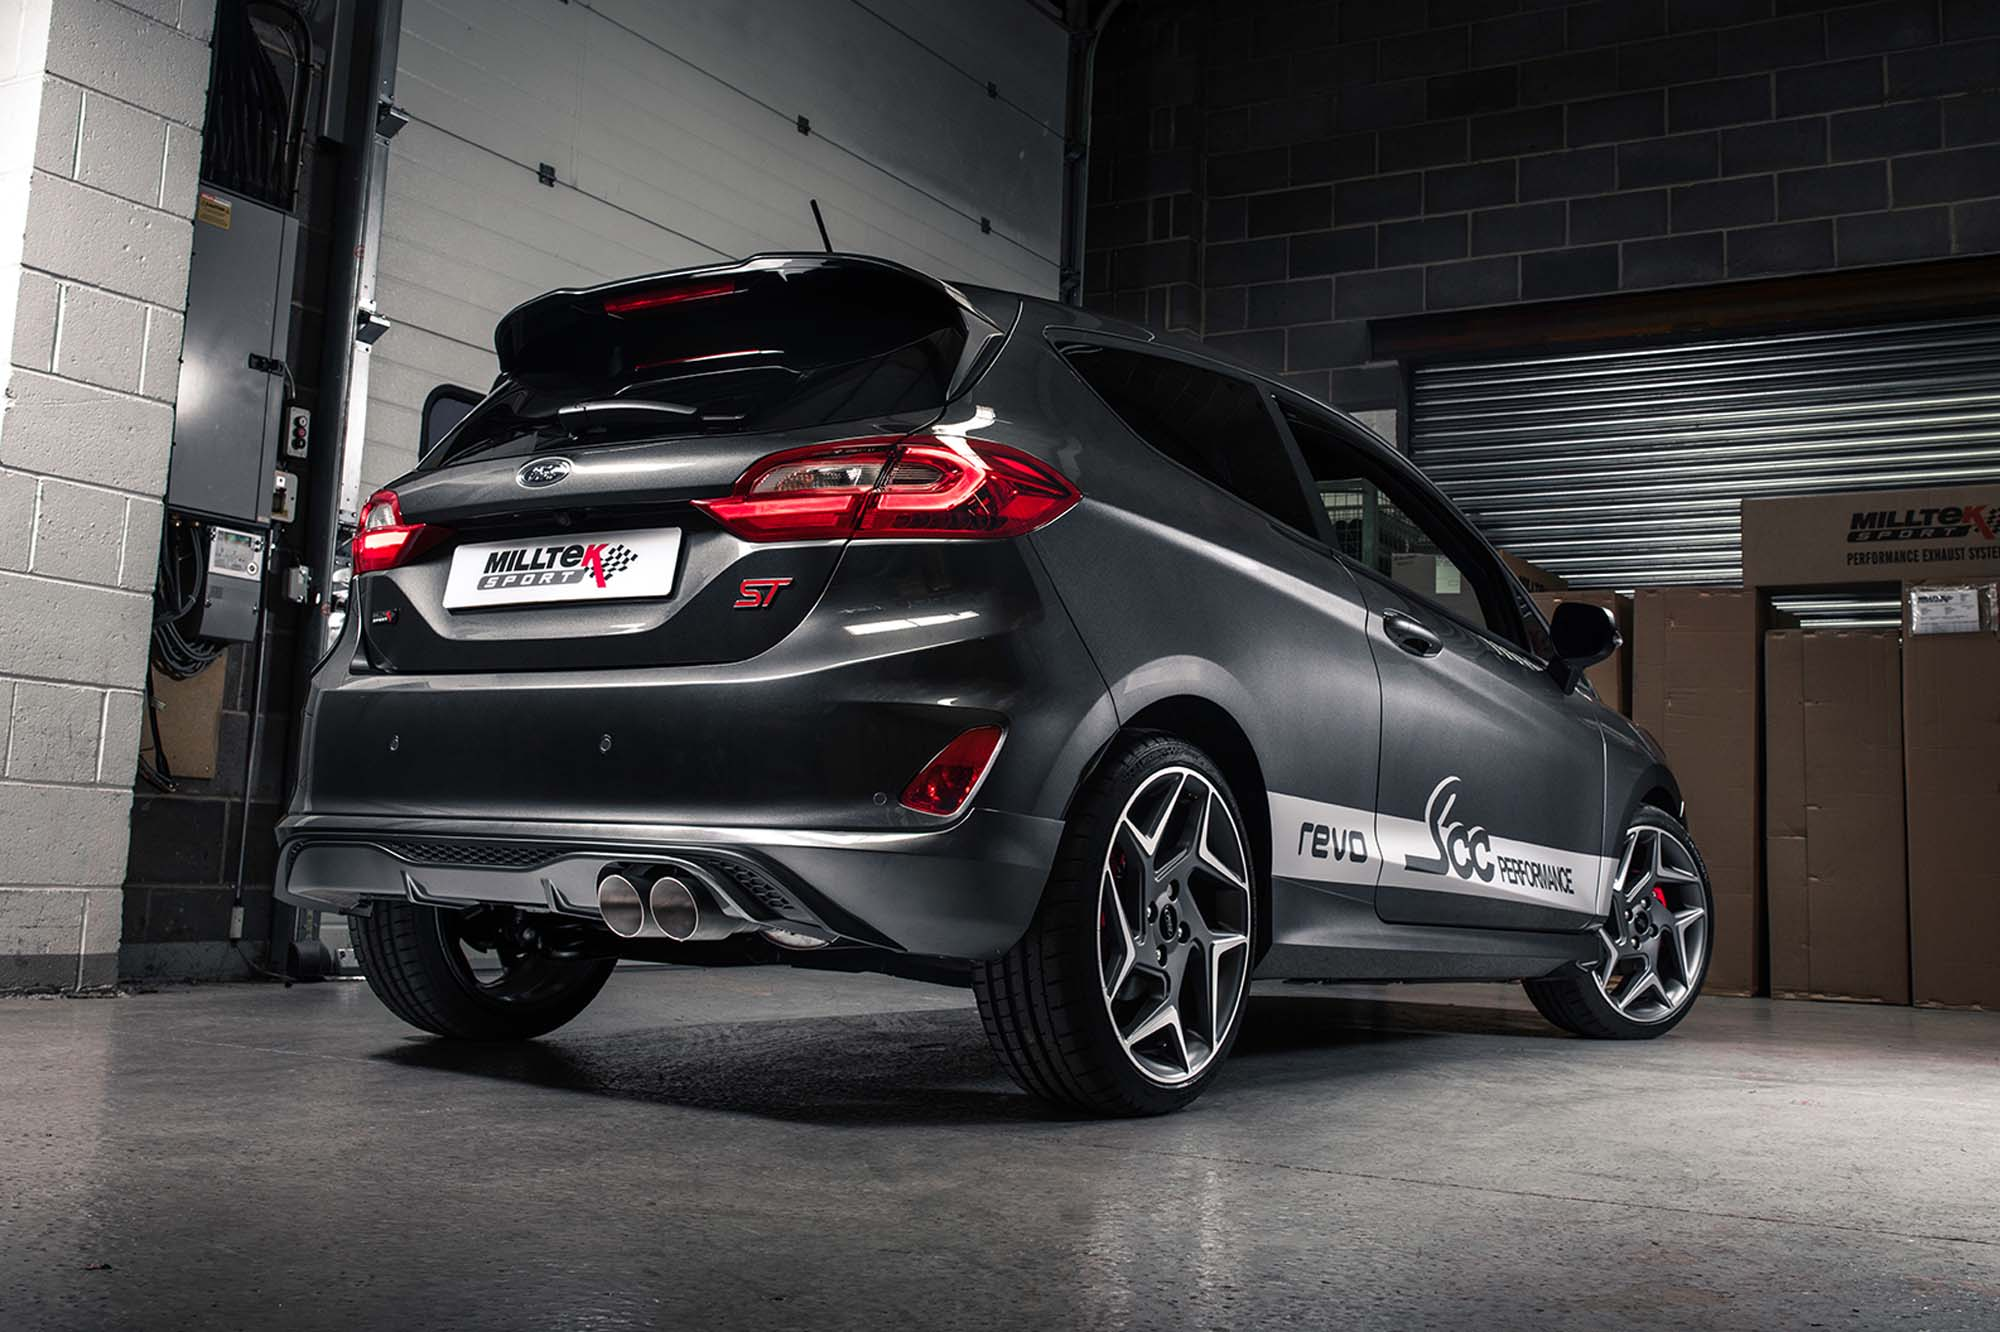 Milltek Sport Unveils New GPF-Back Exhaust For Ford Fiesta ST MK8 1.5L EcoBoost 200PS